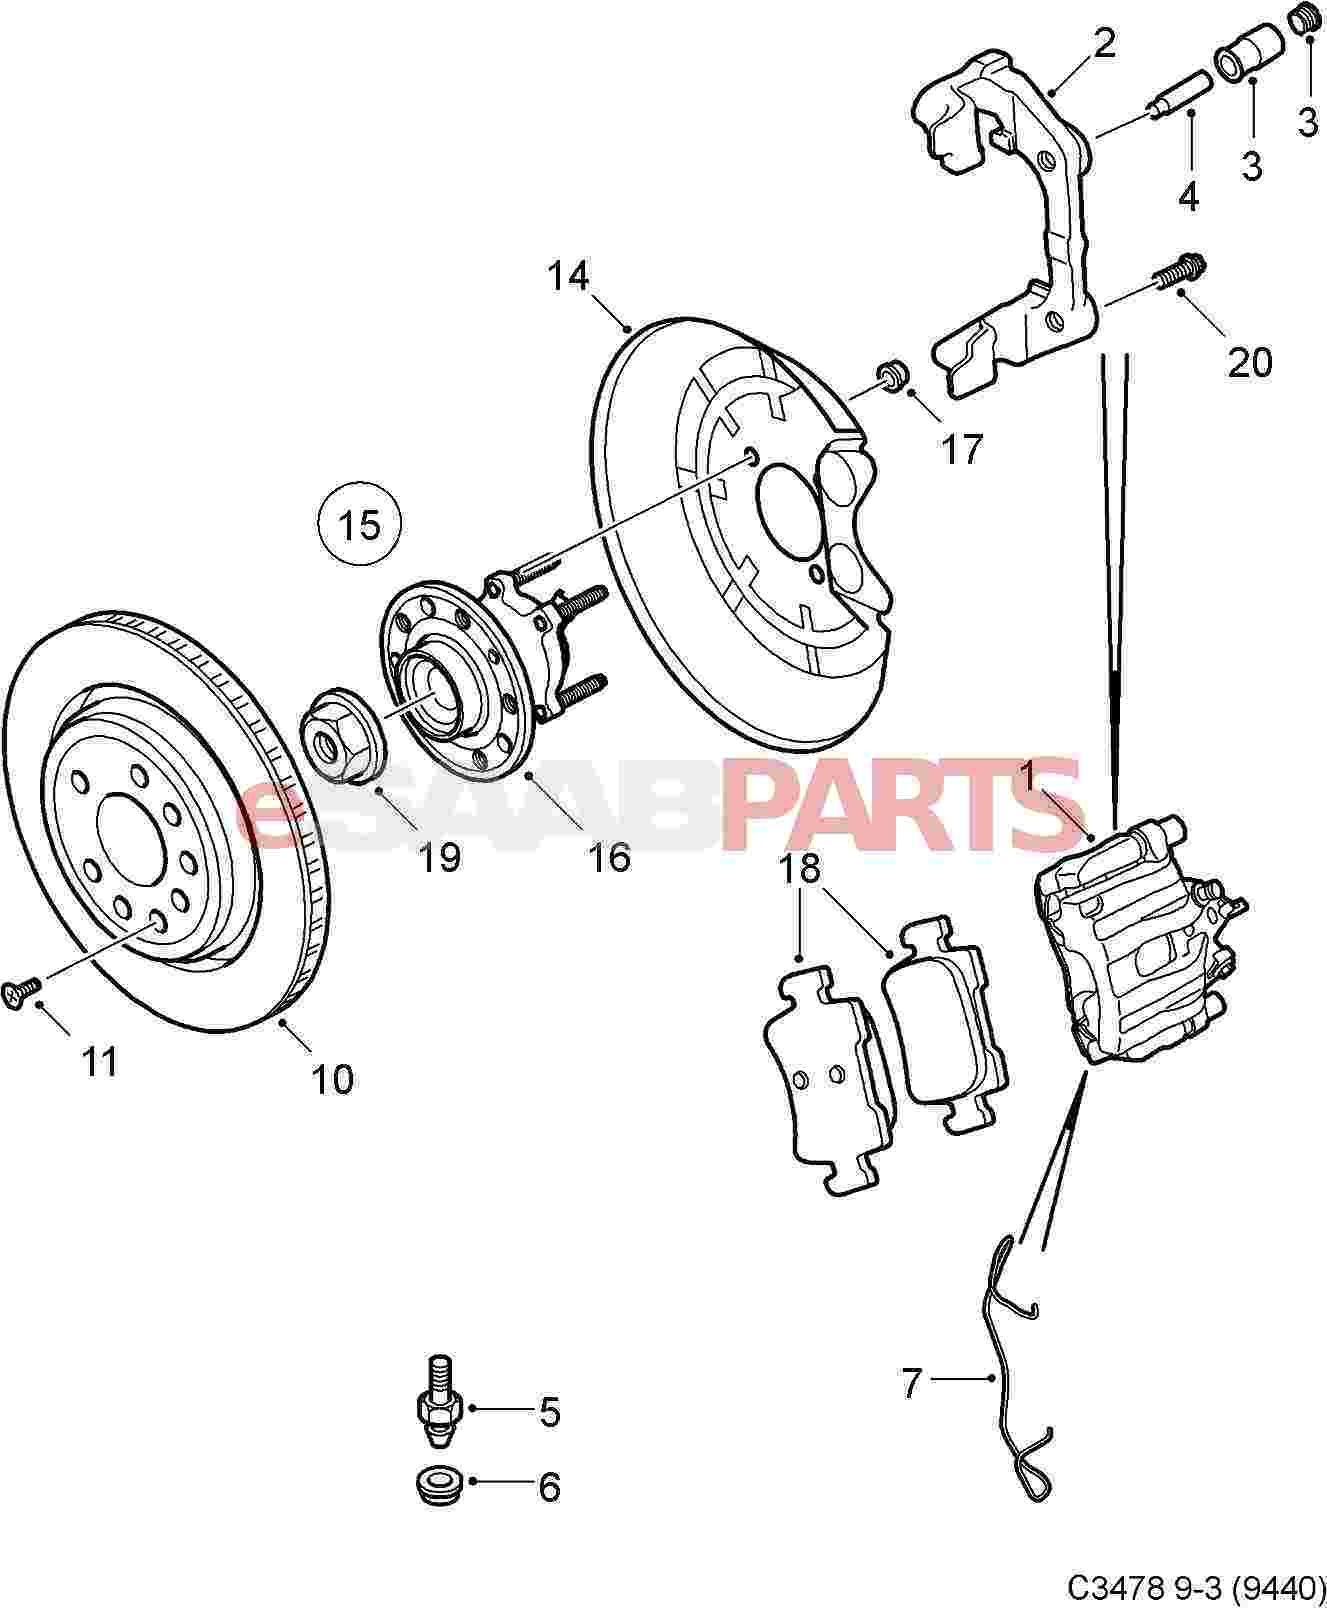 2008 saab 9 3 wiring diagram draw a explaining the water cycle parts auto catalog and